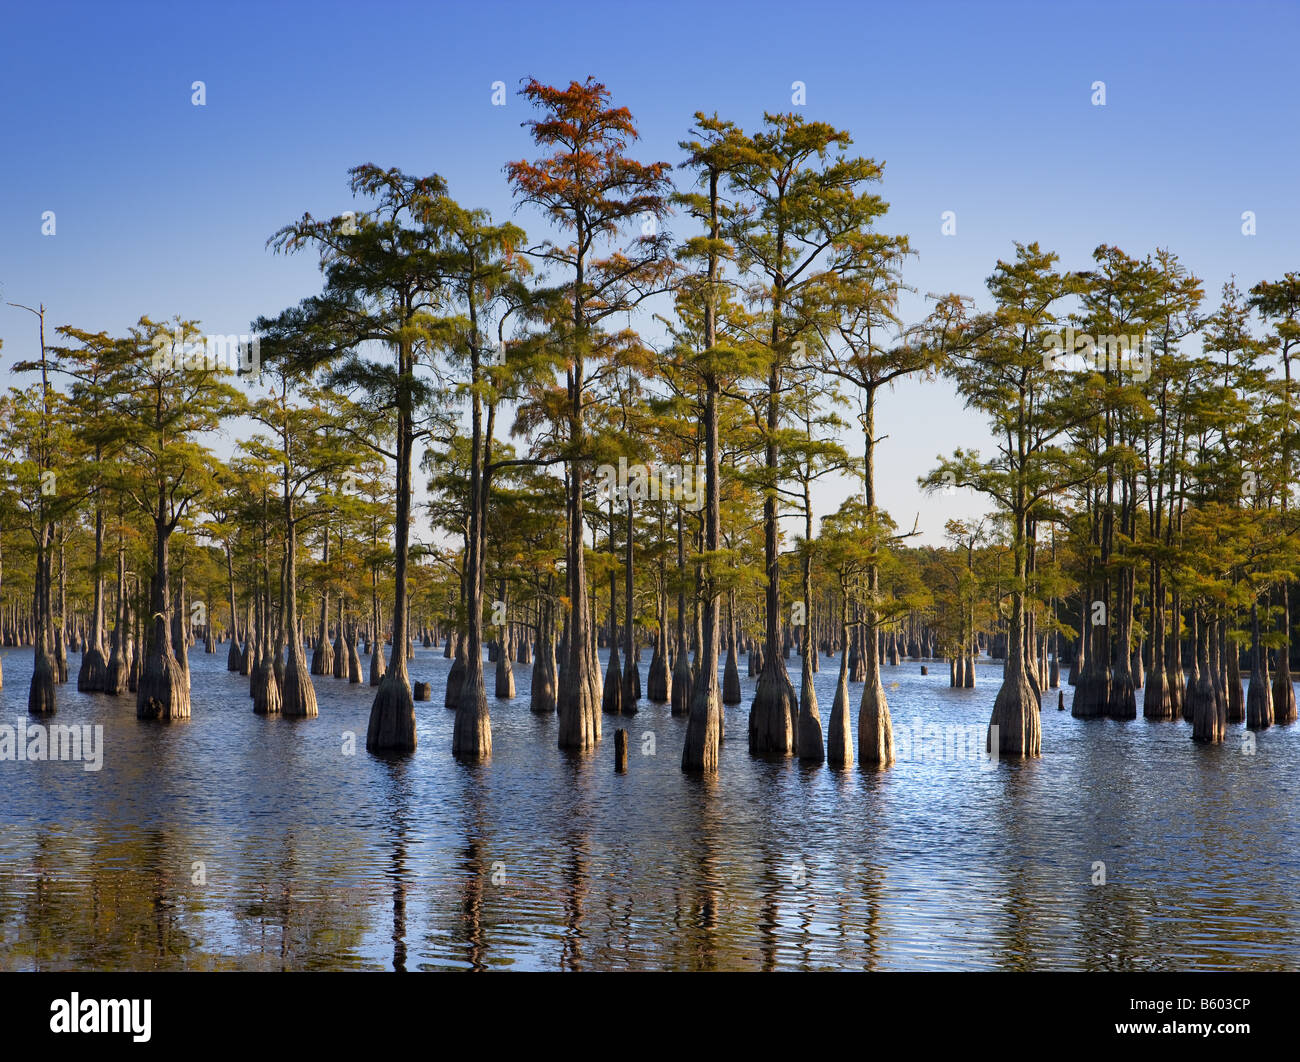 Cypress Trees in the water as seen in South Georgia, USA Stock Photo